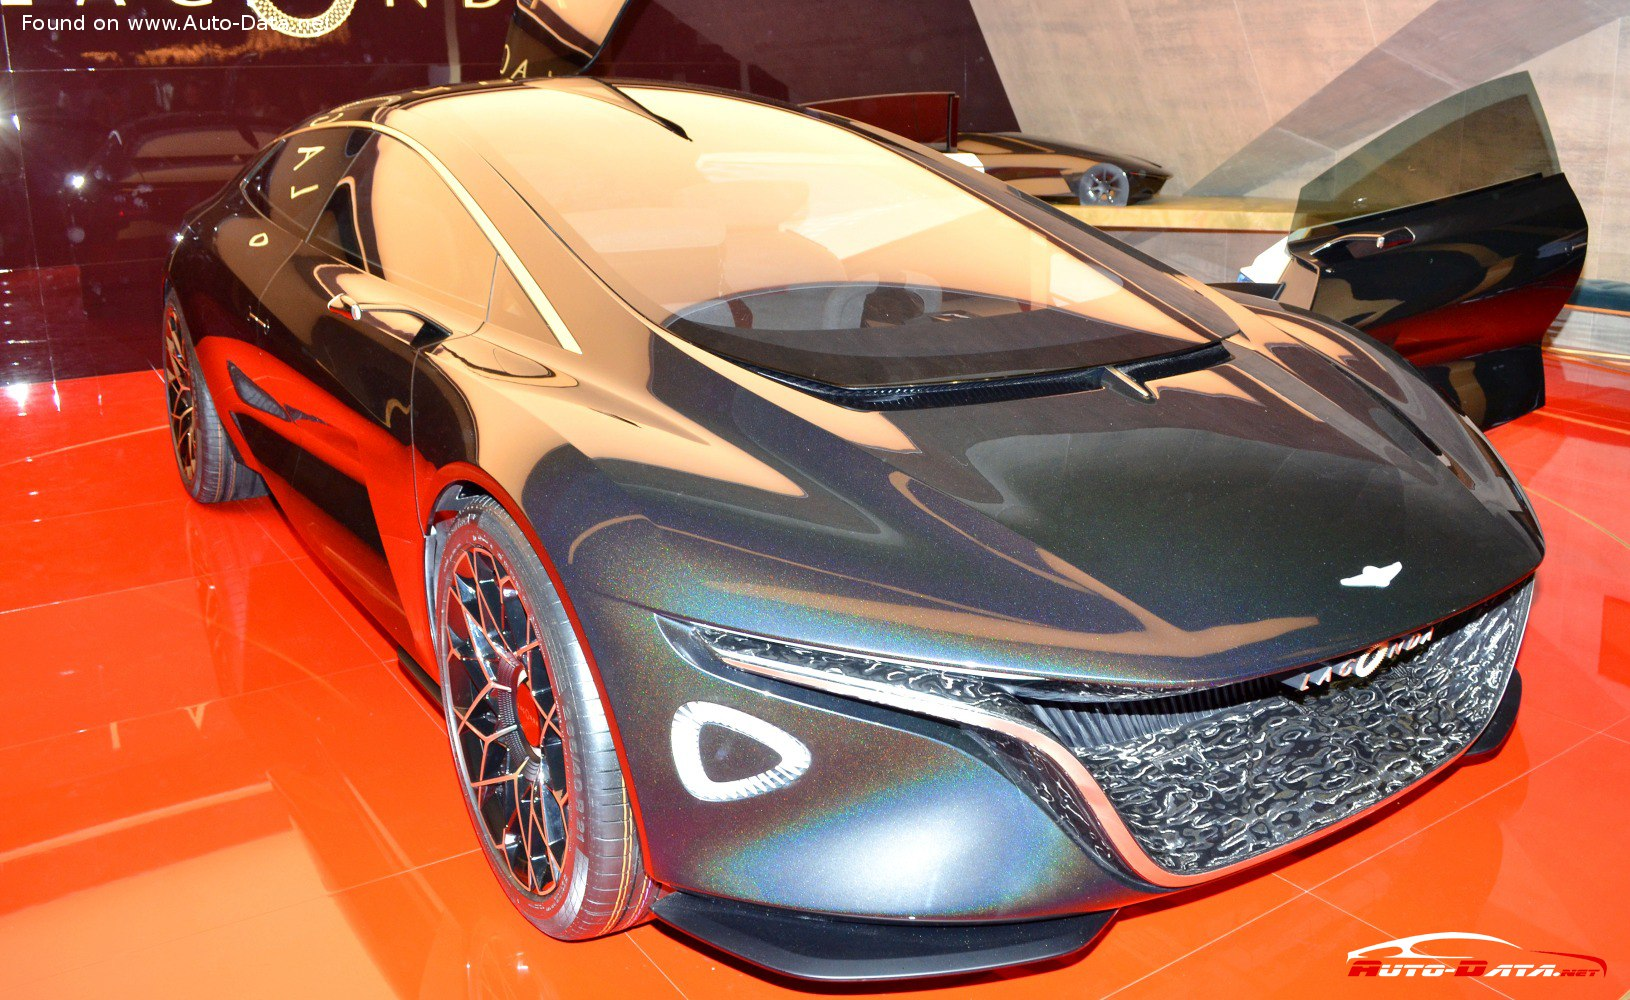 2021 Aston Martin Lagonda Vision Concept Technical Specs Fuel Consumption Dimensions